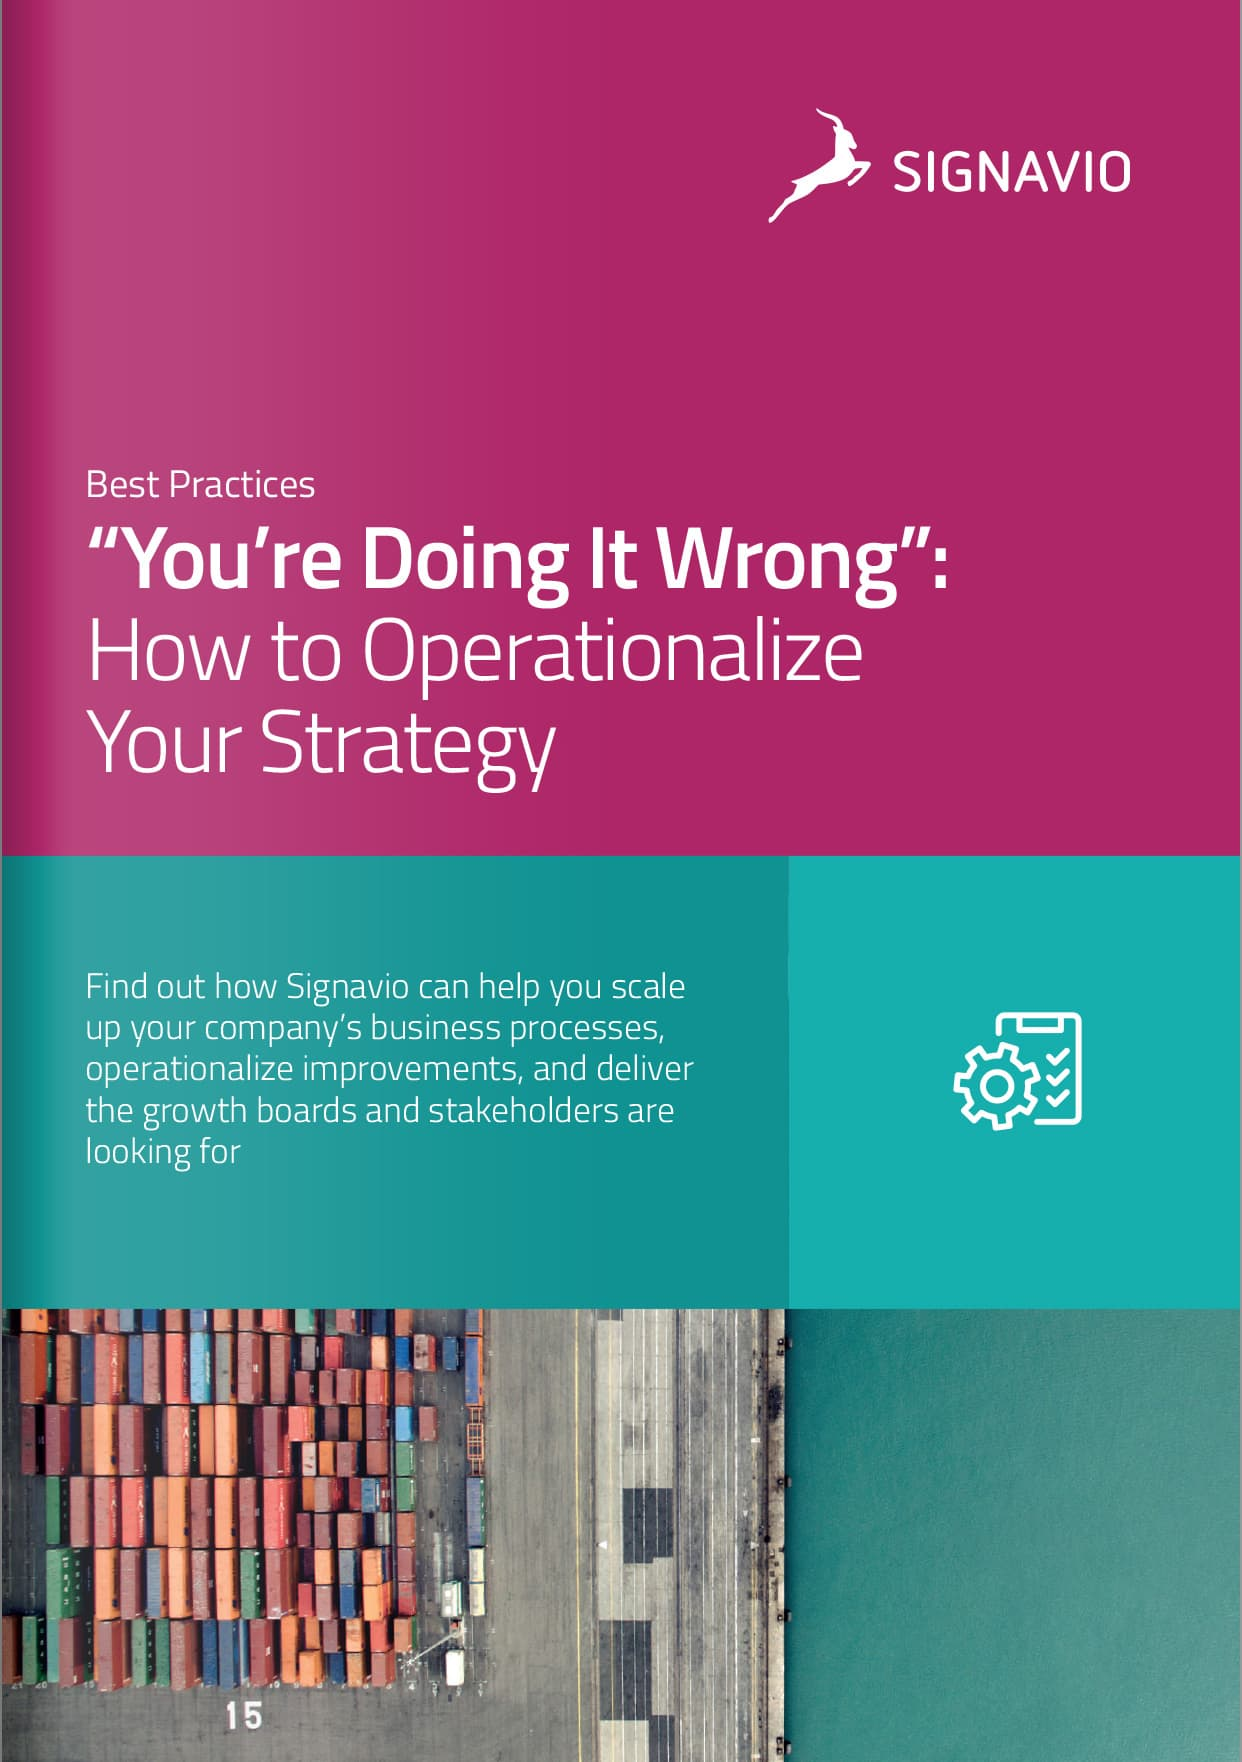 Operationalize Your Strategy cover image